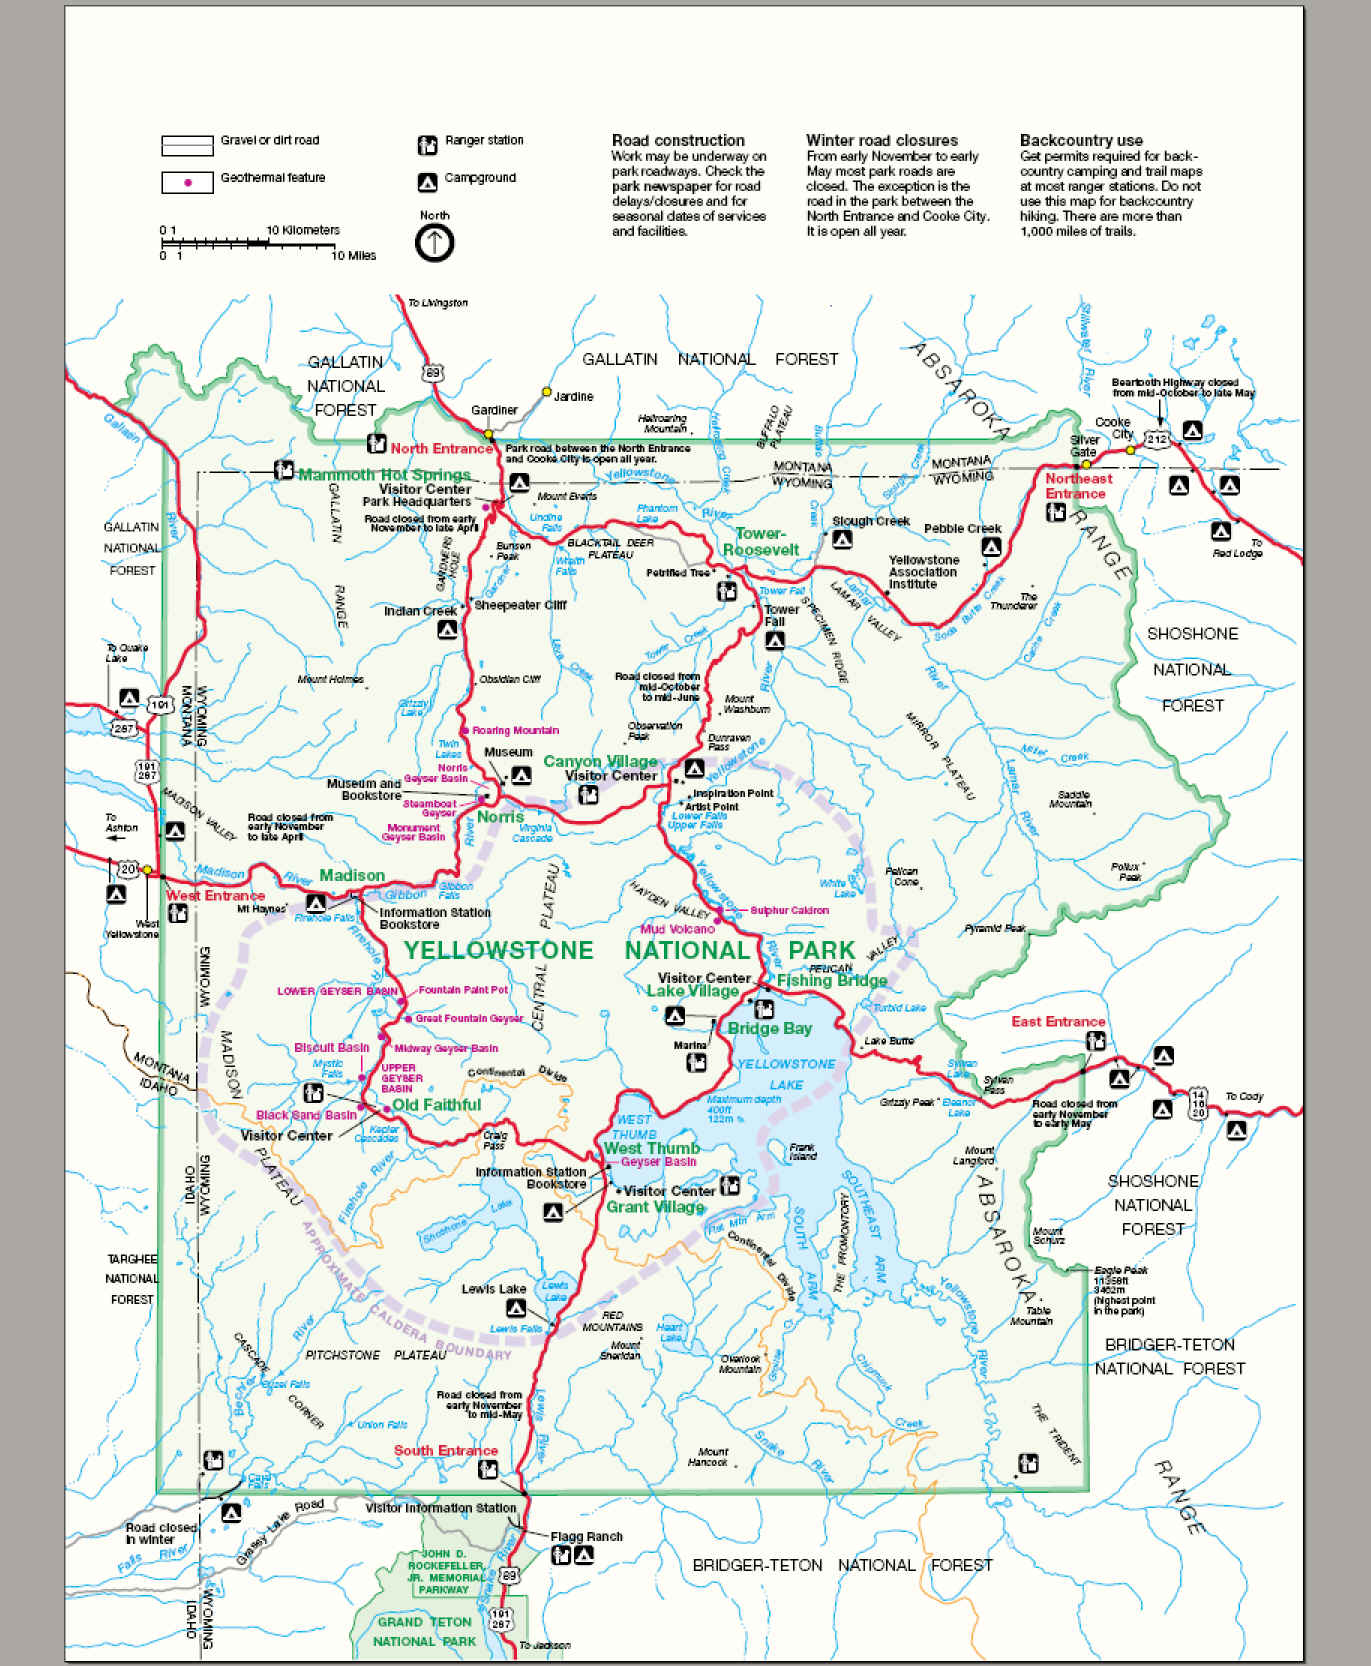 FileMap Yellowstone National Parkjpg Wikimedia Commons - Yellowstone map us